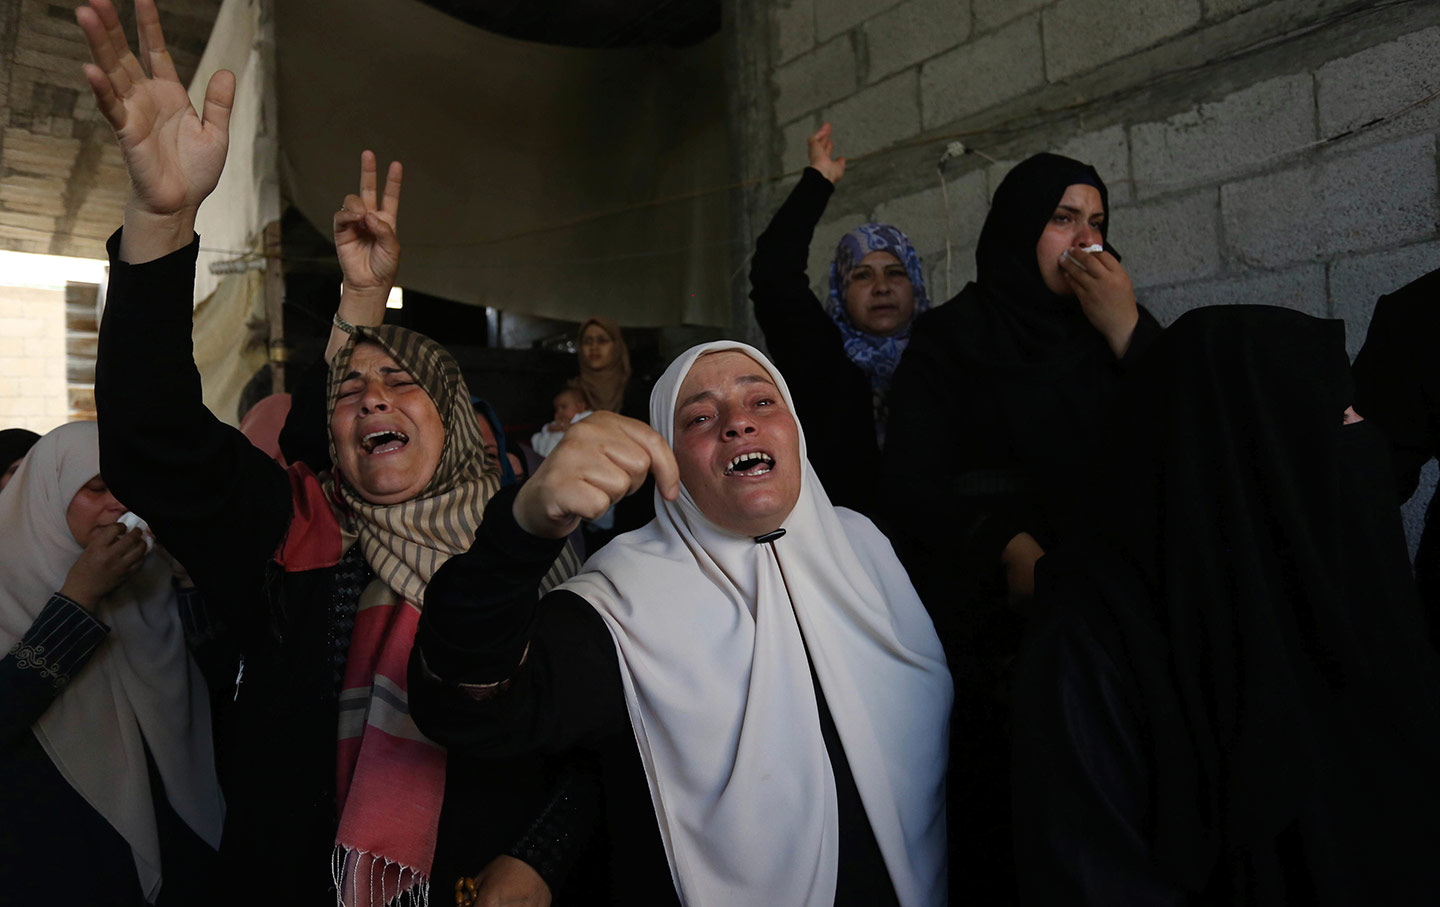 Palestinians Engaged in Nonviolent Protest  Israel Responded